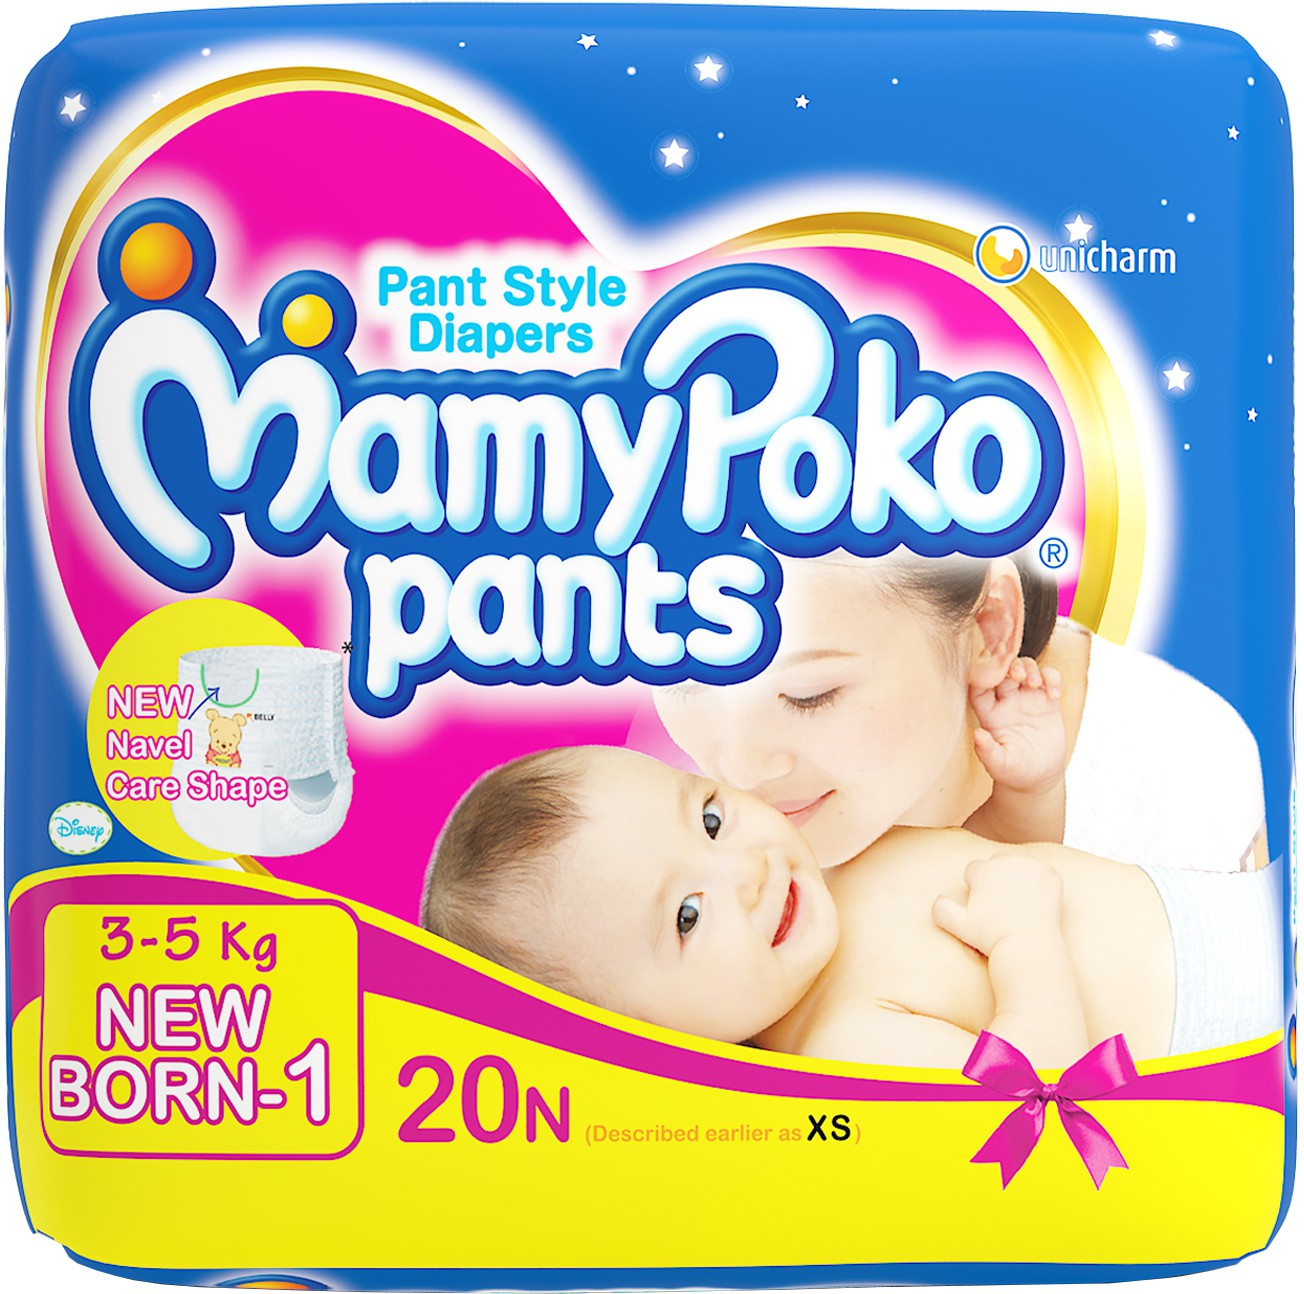 Deals - Delhi - Mamy Poko <br> Range of Diapers<br> Category - baby_care<br> Business - Flipkart.com